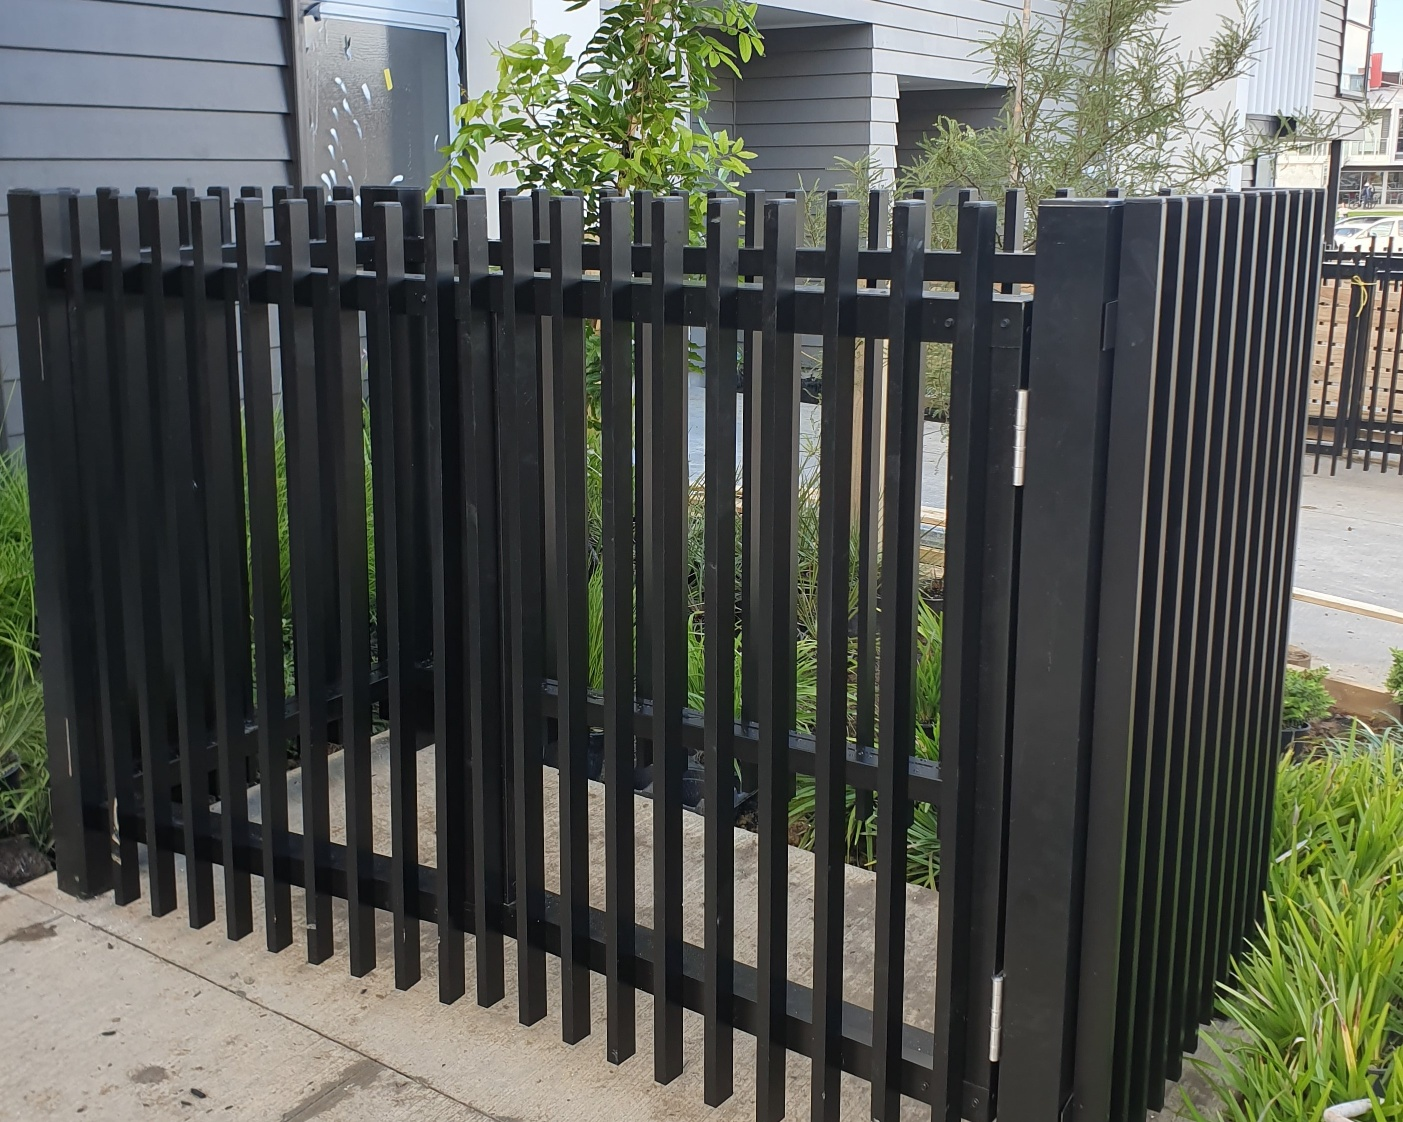 Bin screen with black powder-coated louvre blades